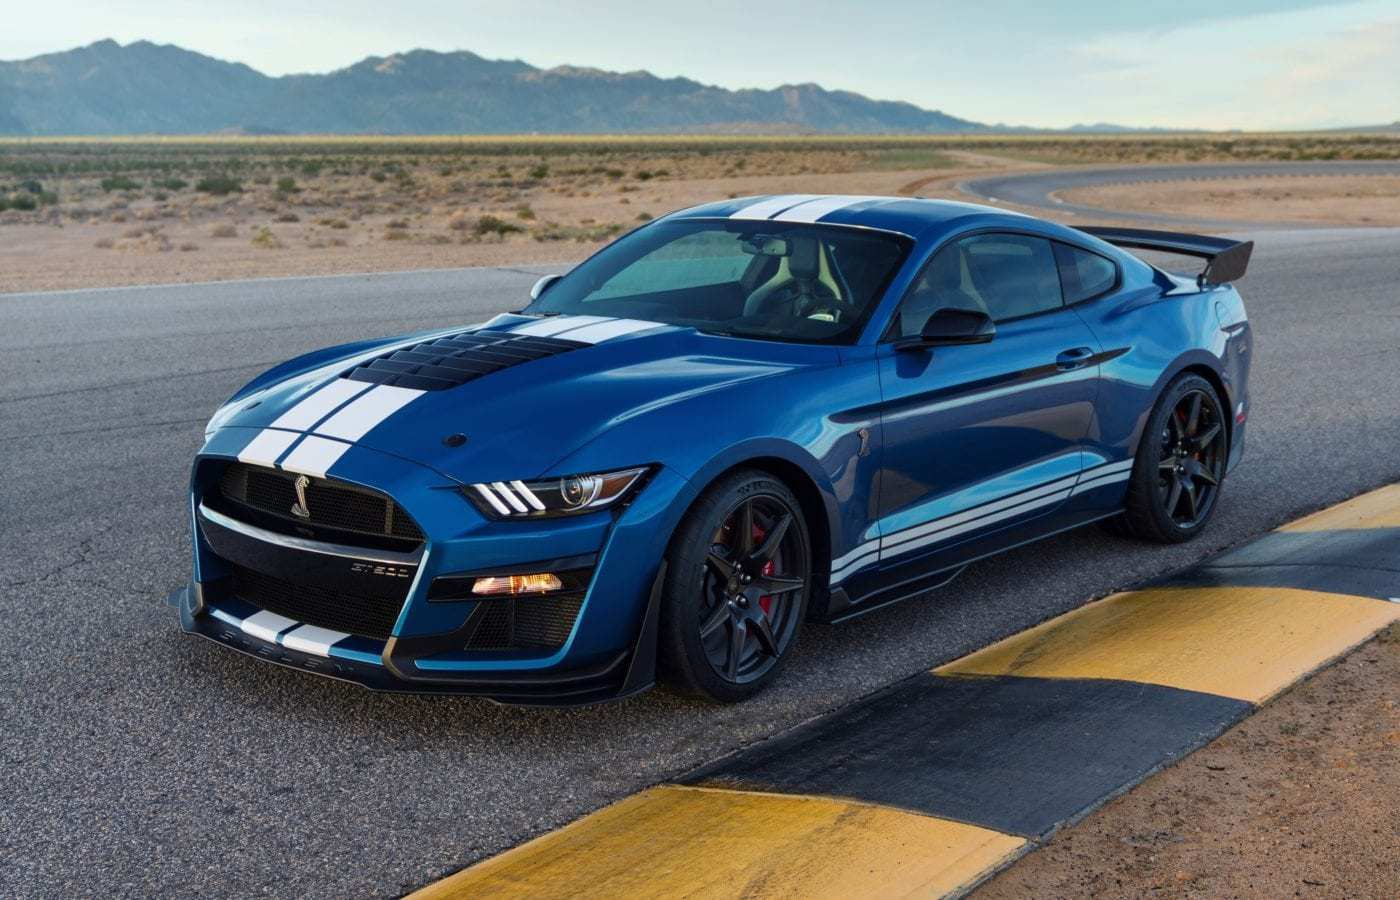 98 A Price Of 2020 Ford Mustang Shelby Gt500 Performance